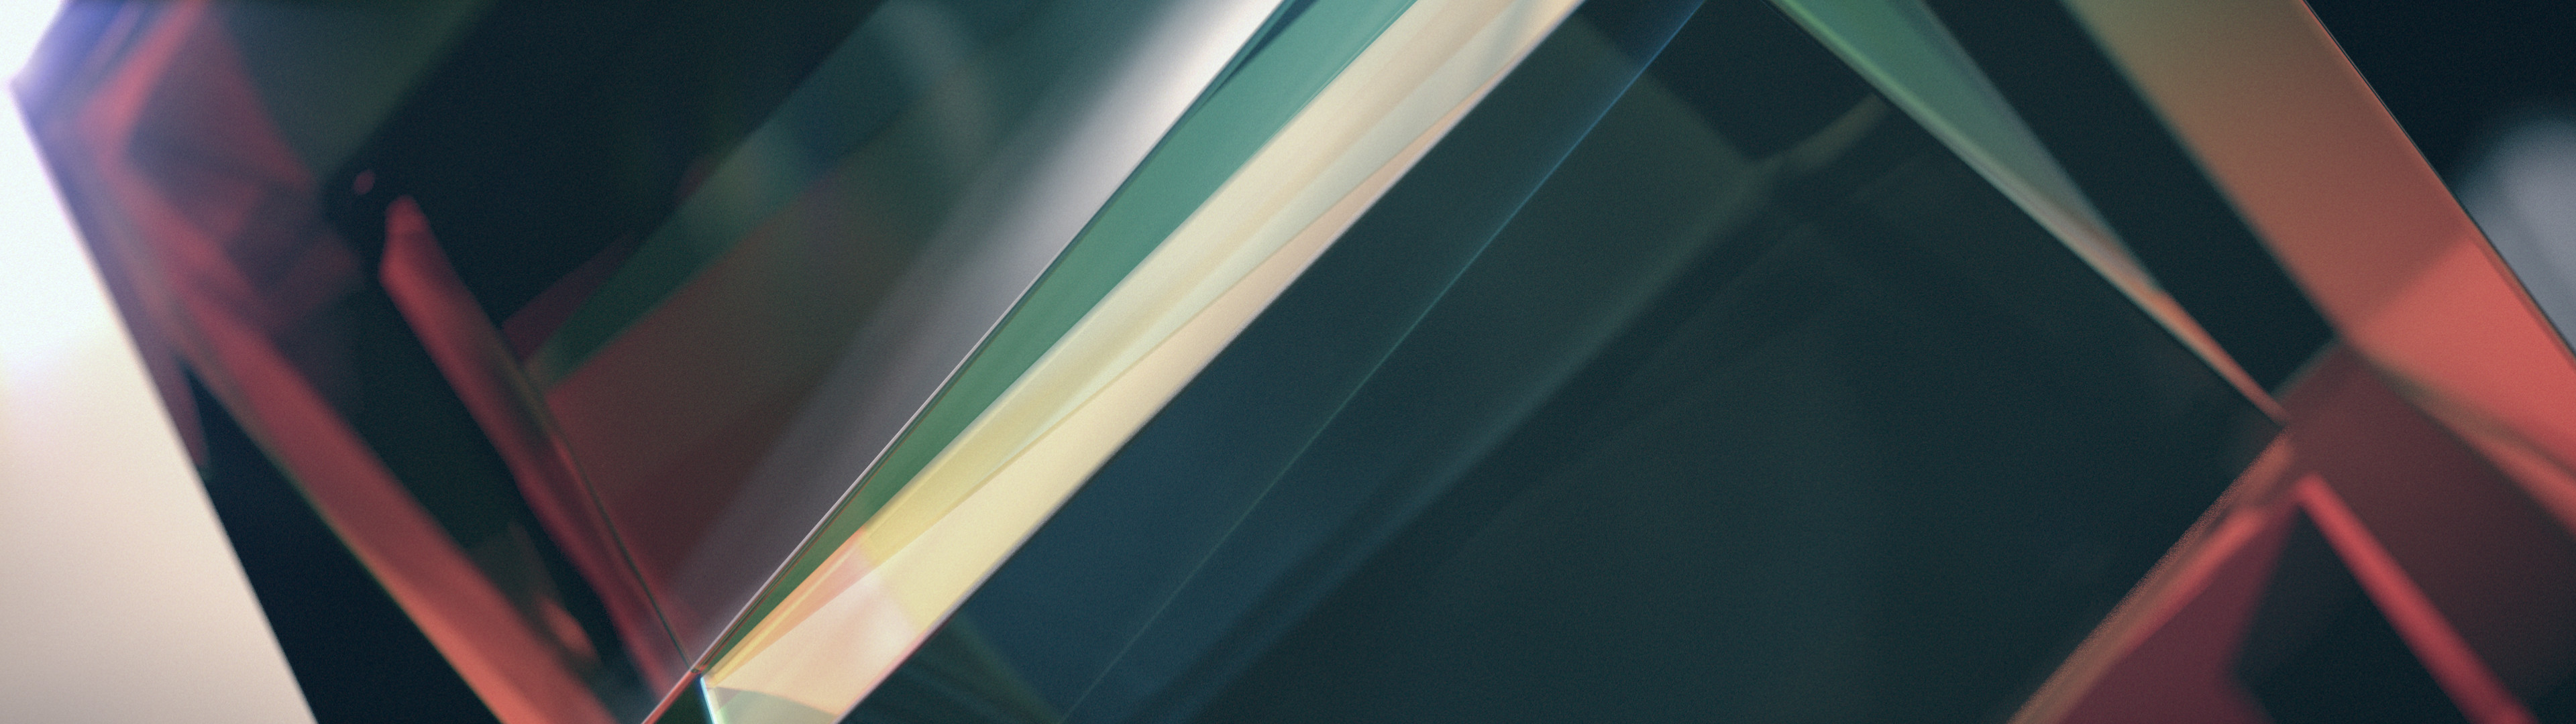 3840x1080 Abstract Dual Monitor ()[OC] ...